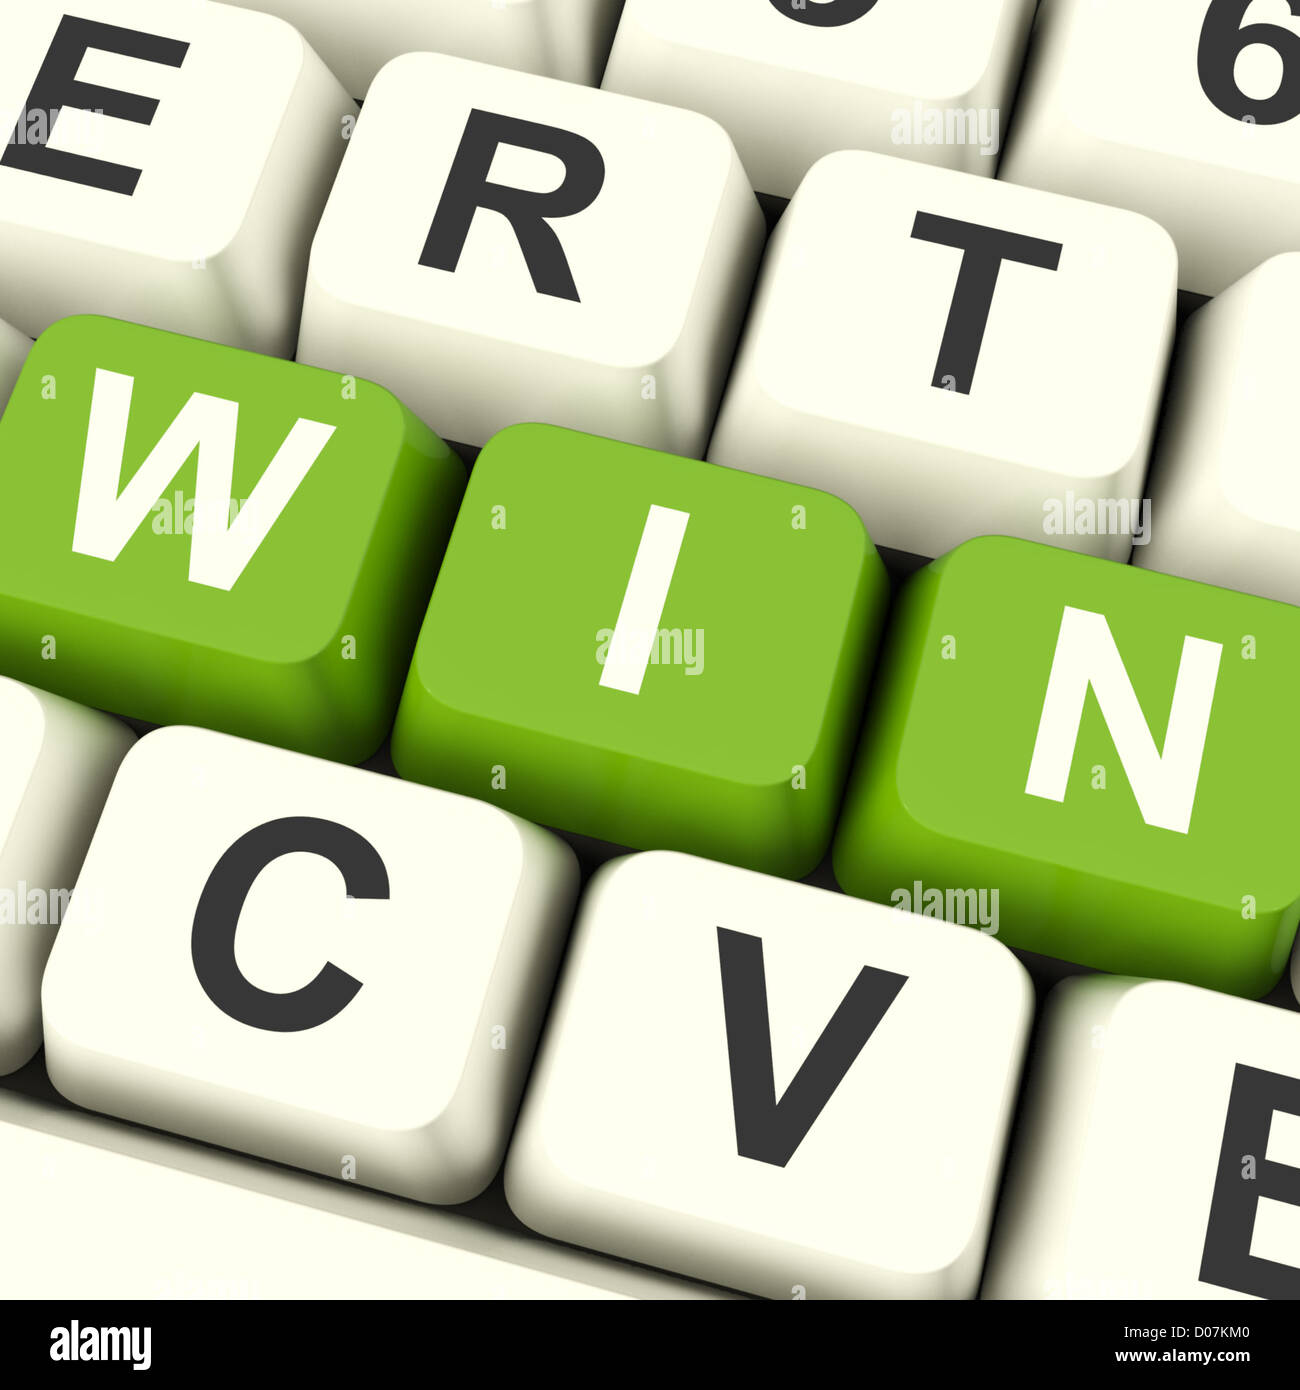 Win Computer Keys Representing Successes And Victory - Stock Image